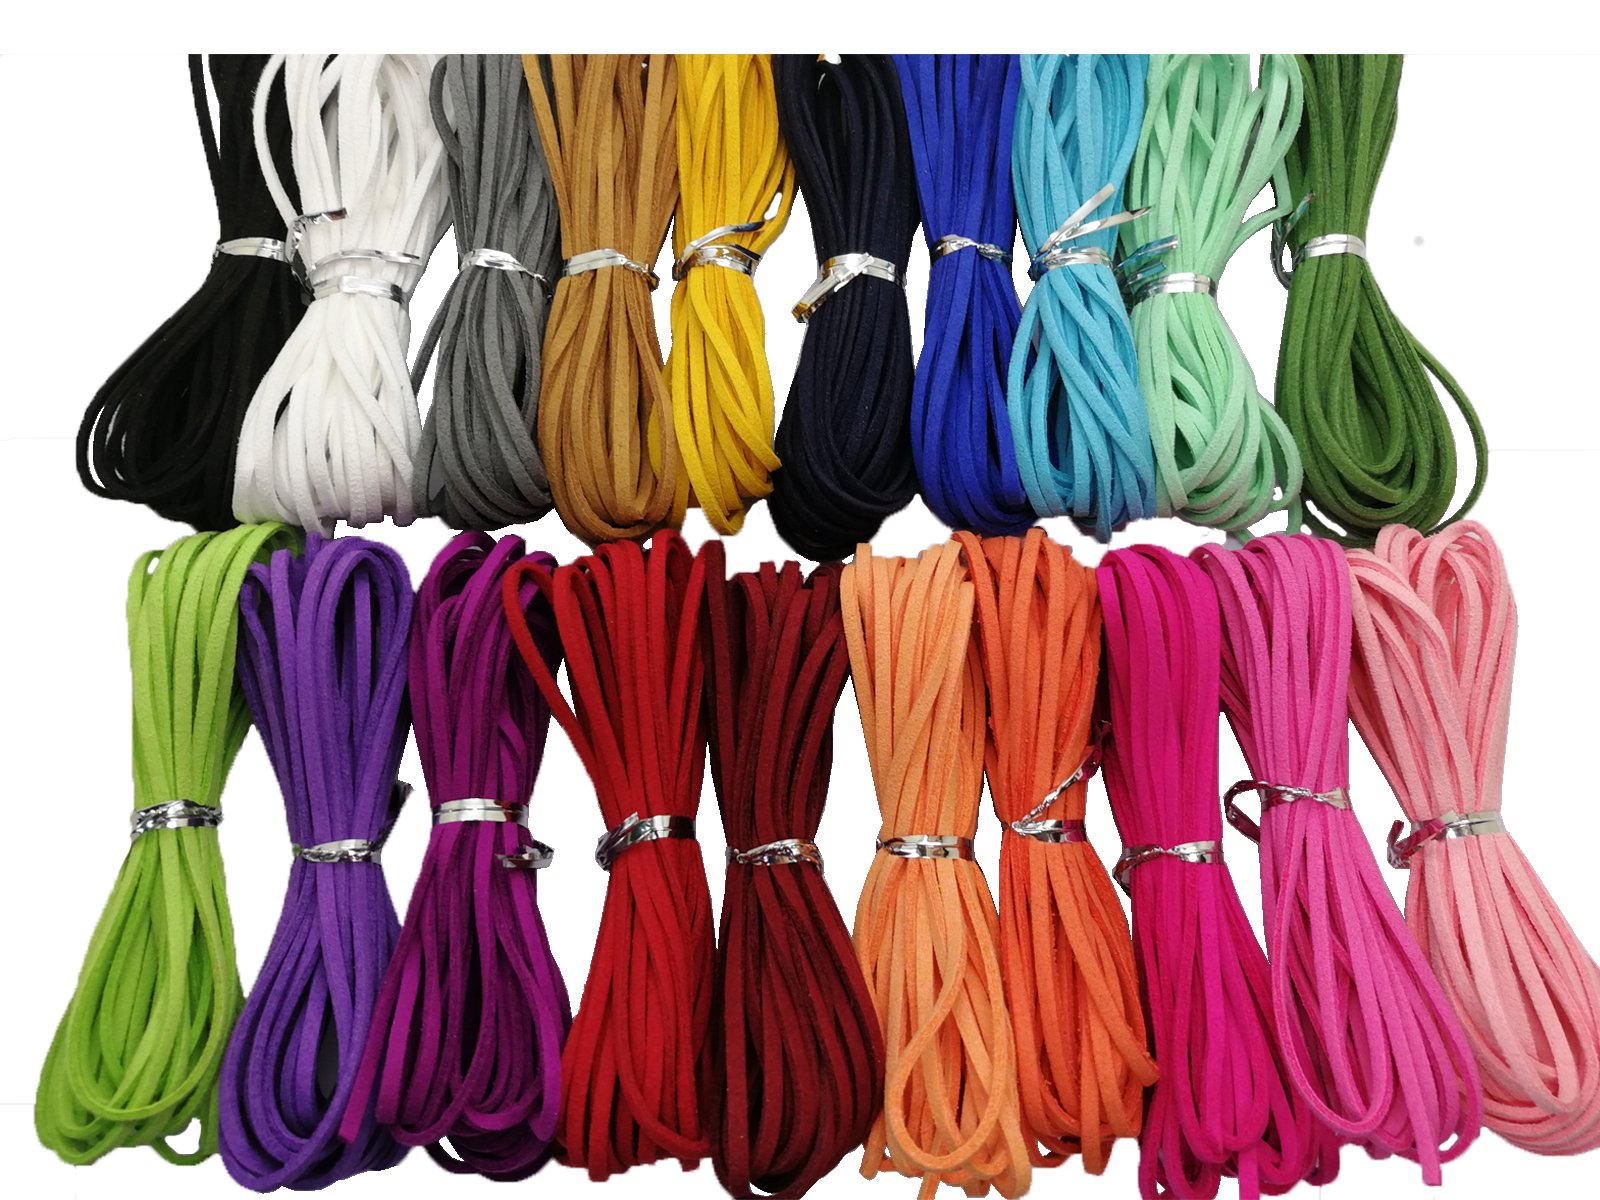 100 Yards 20 Bundles 2.6mm Suede Korean Velvet Leather Thread (Color-2) #205 by Pamir Tong